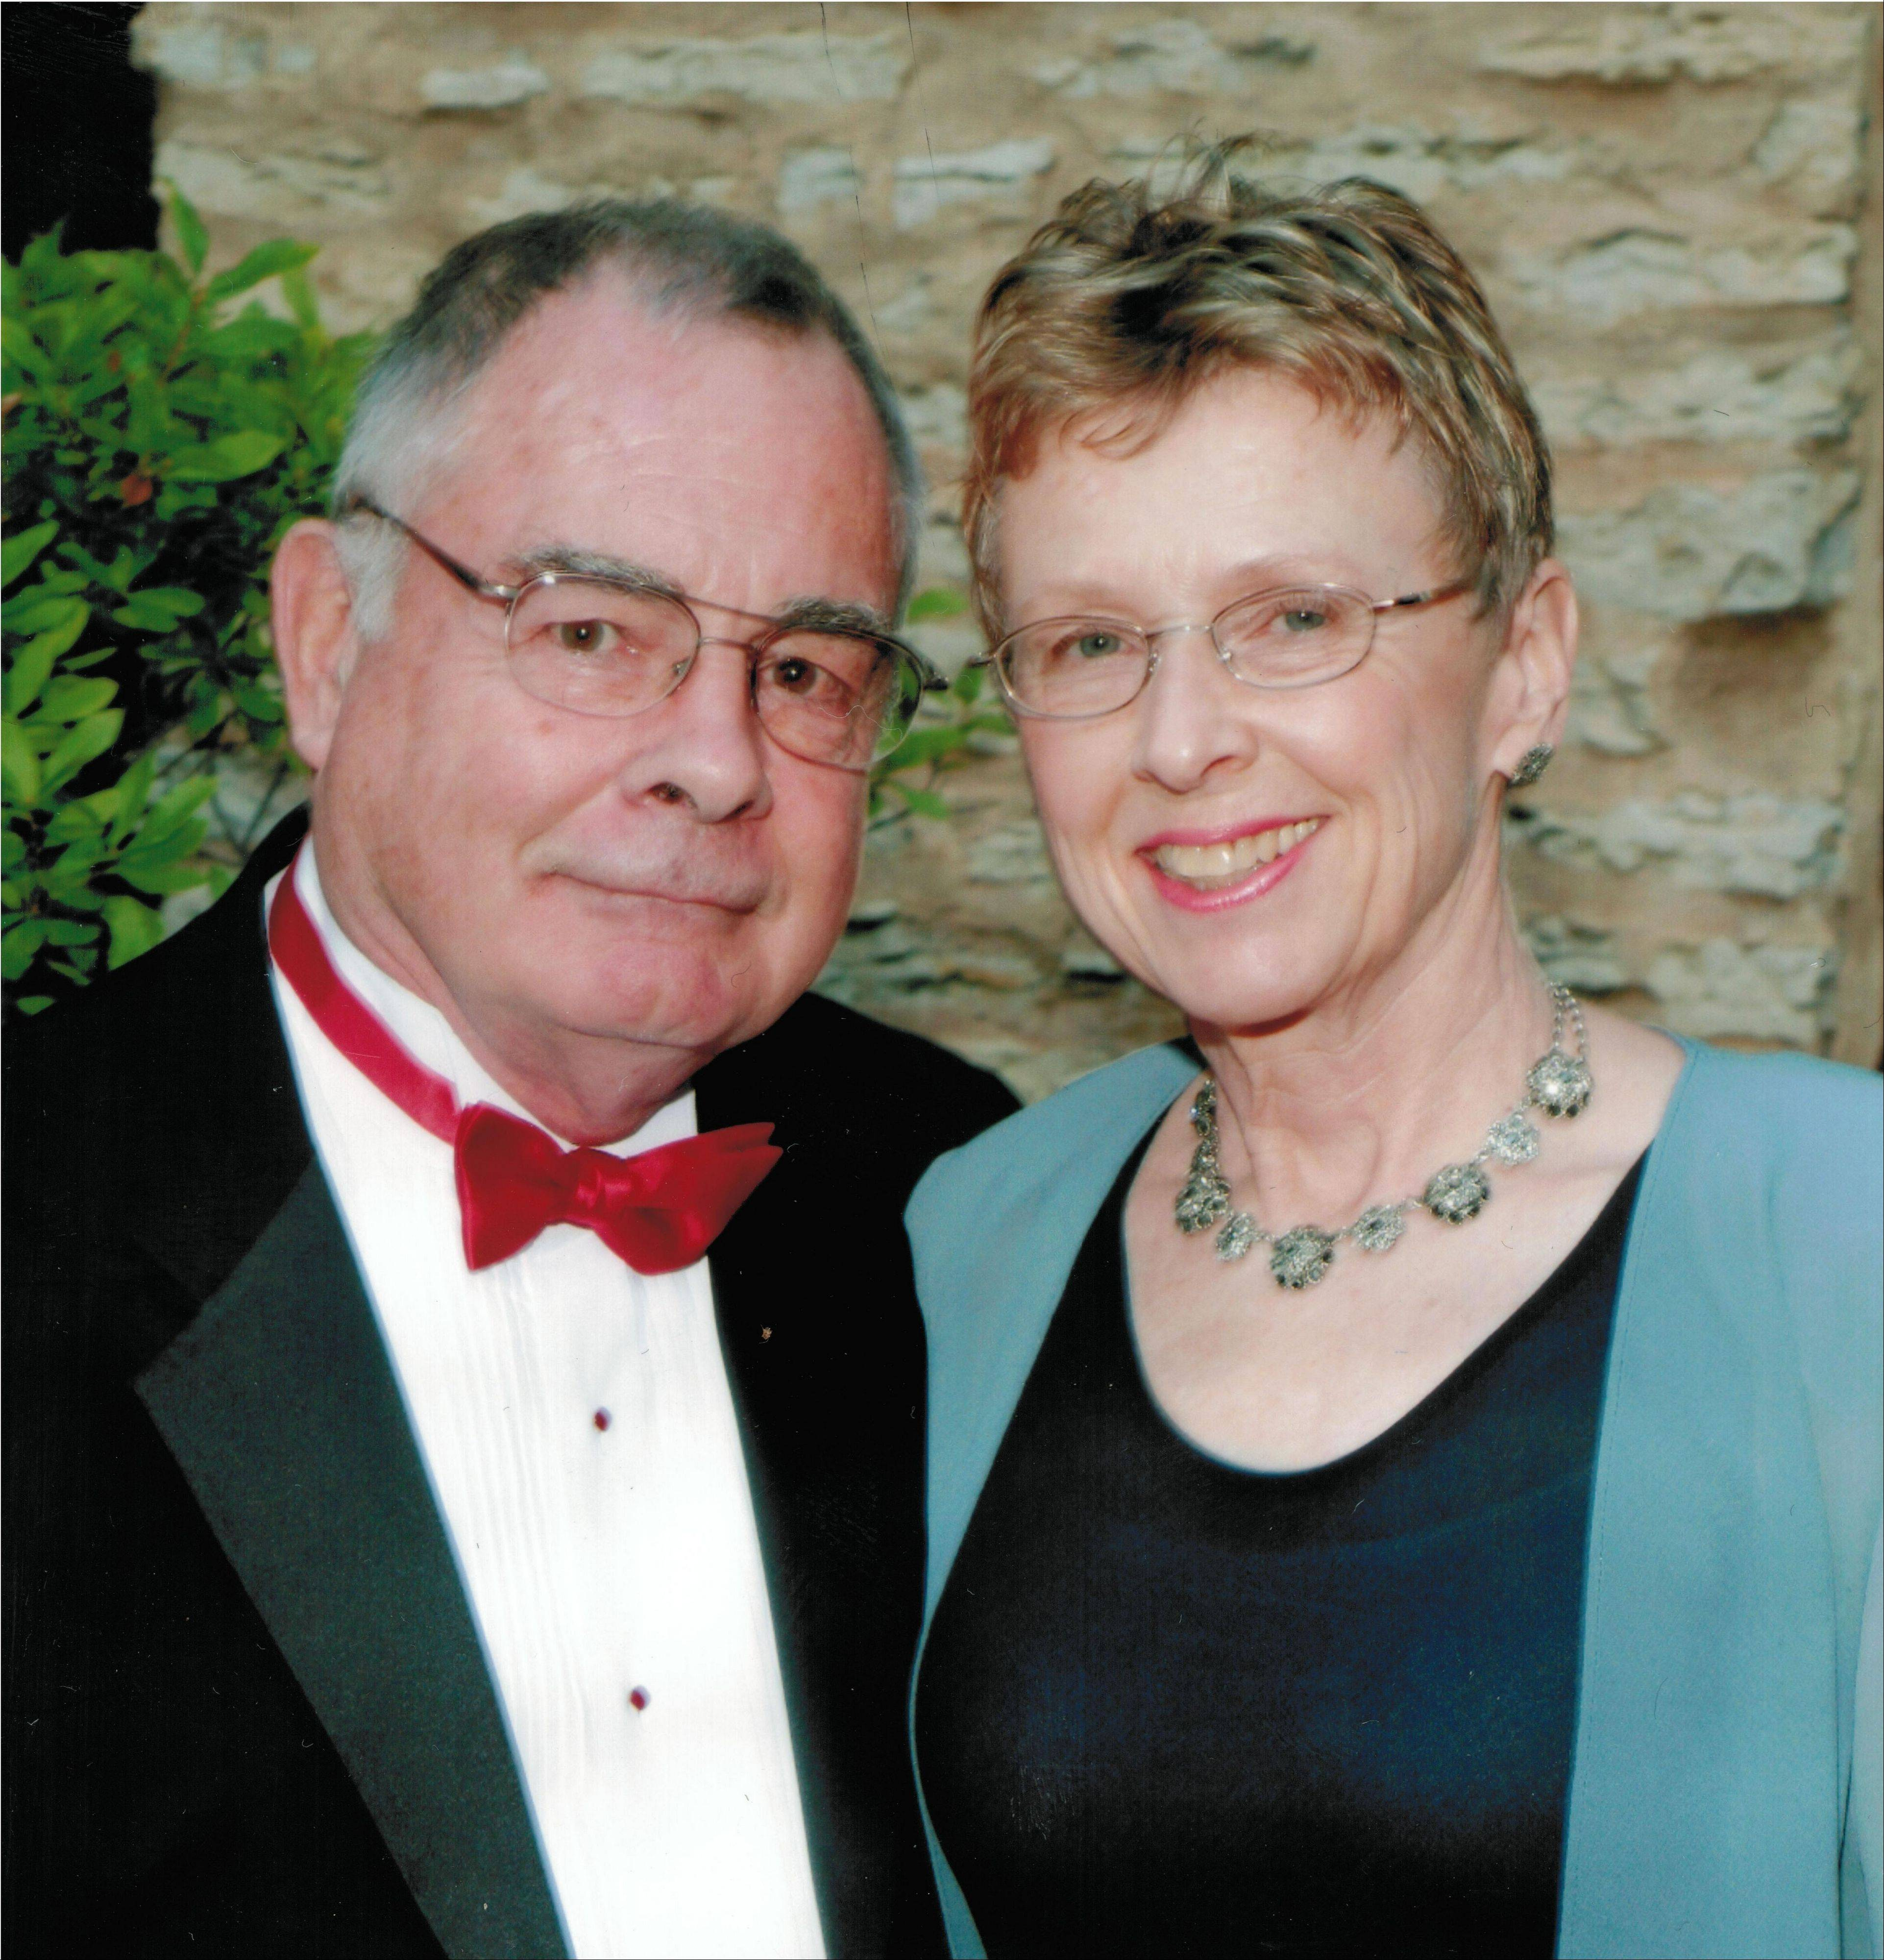 John �Jack� Ryan, shown with his wife Martha, was a former Geneva alderman, firefighter and longtime community supporter. He died Thursday at 78.